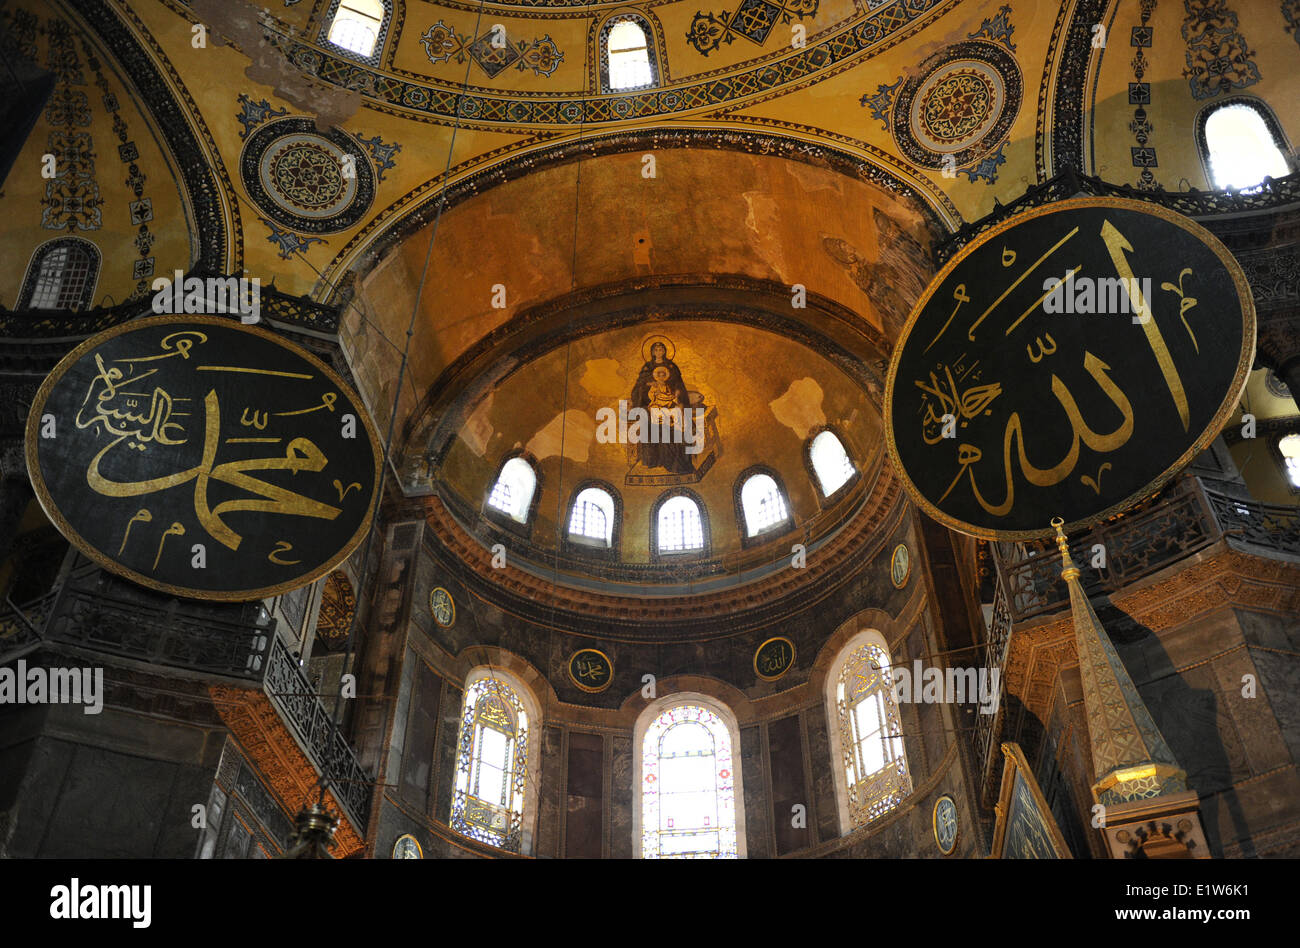 Turkey Istanbul Hagia Sophia Interior Apse Mosaic Of The Stock Photo Royalty Free Image